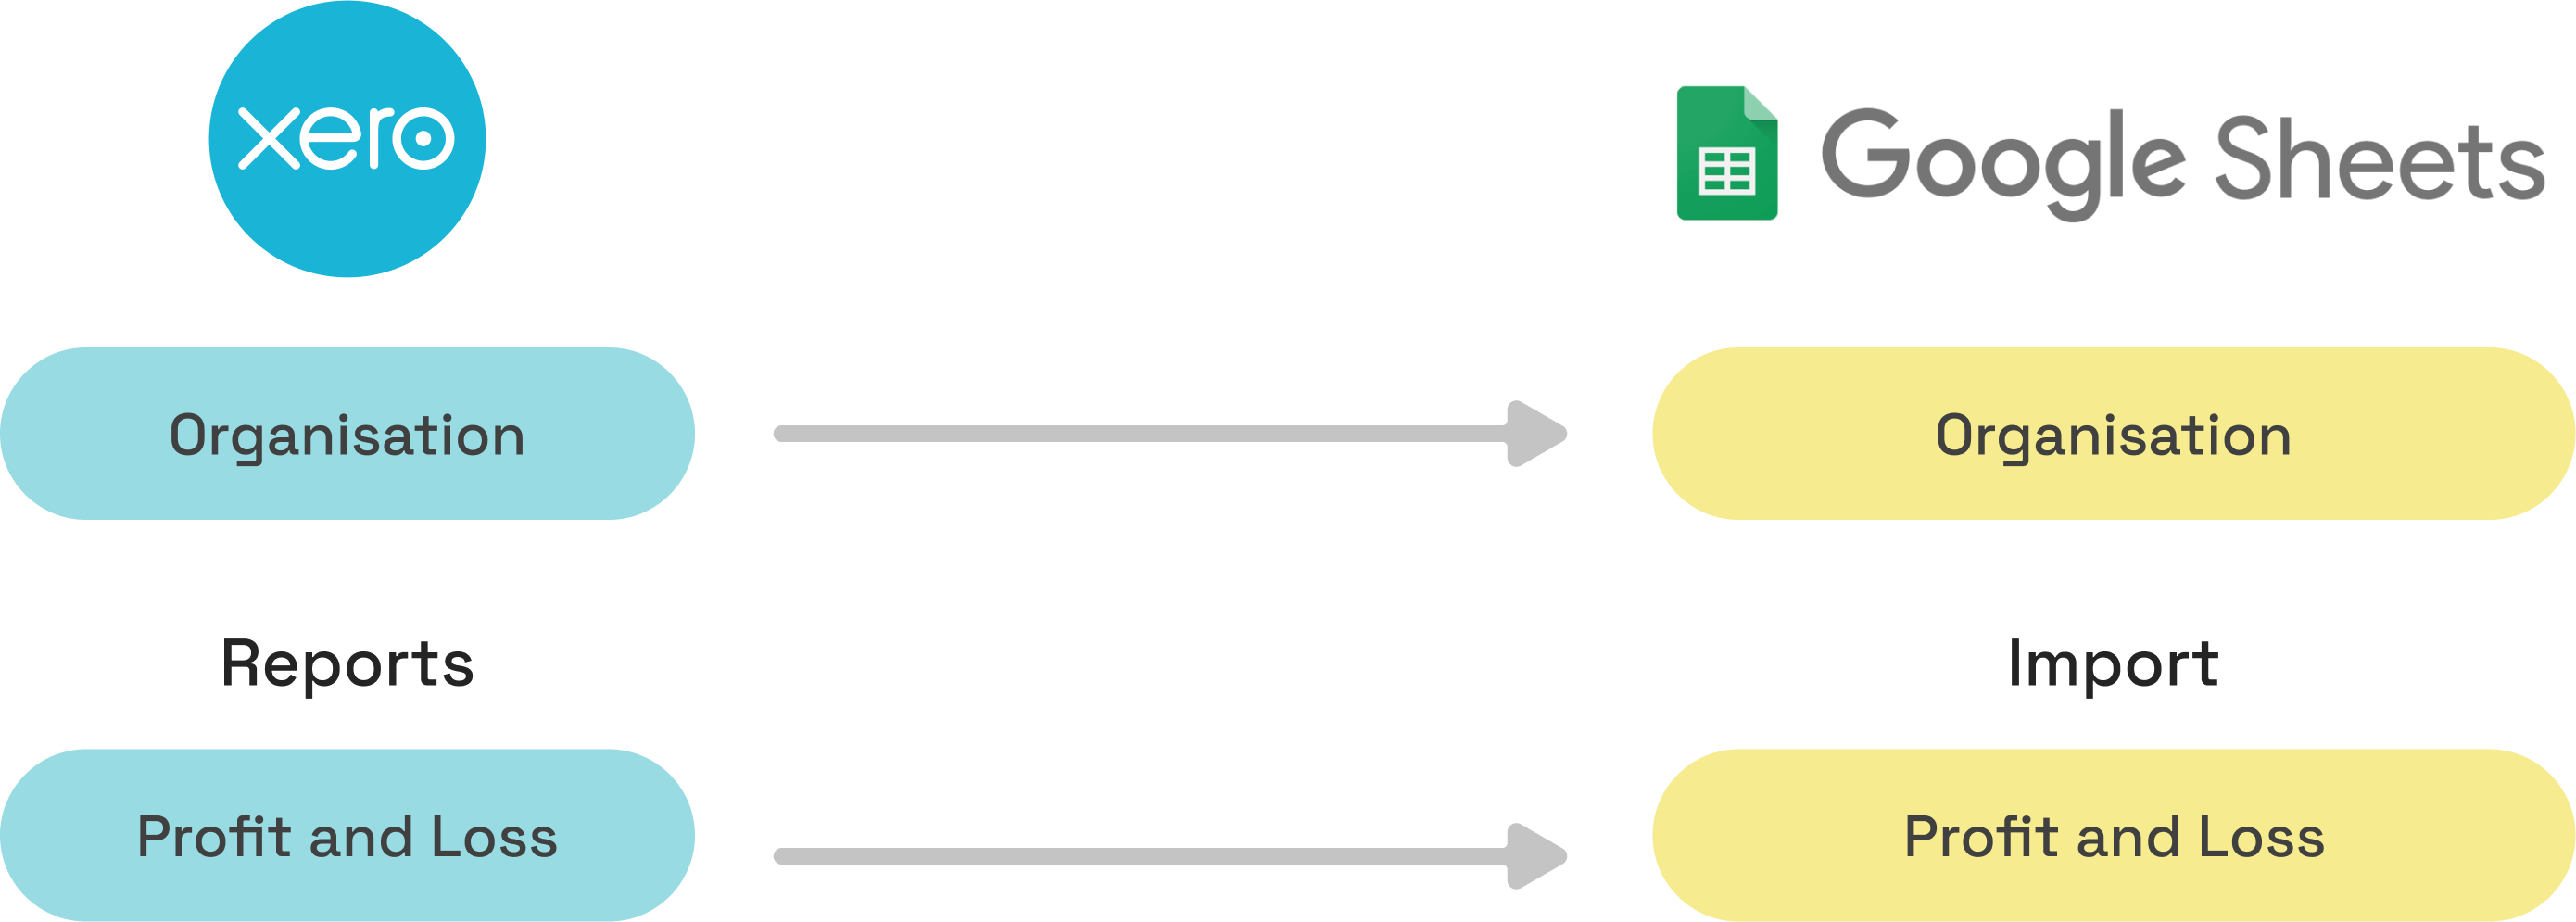 Data flow diagram from Xero to Google Sheets